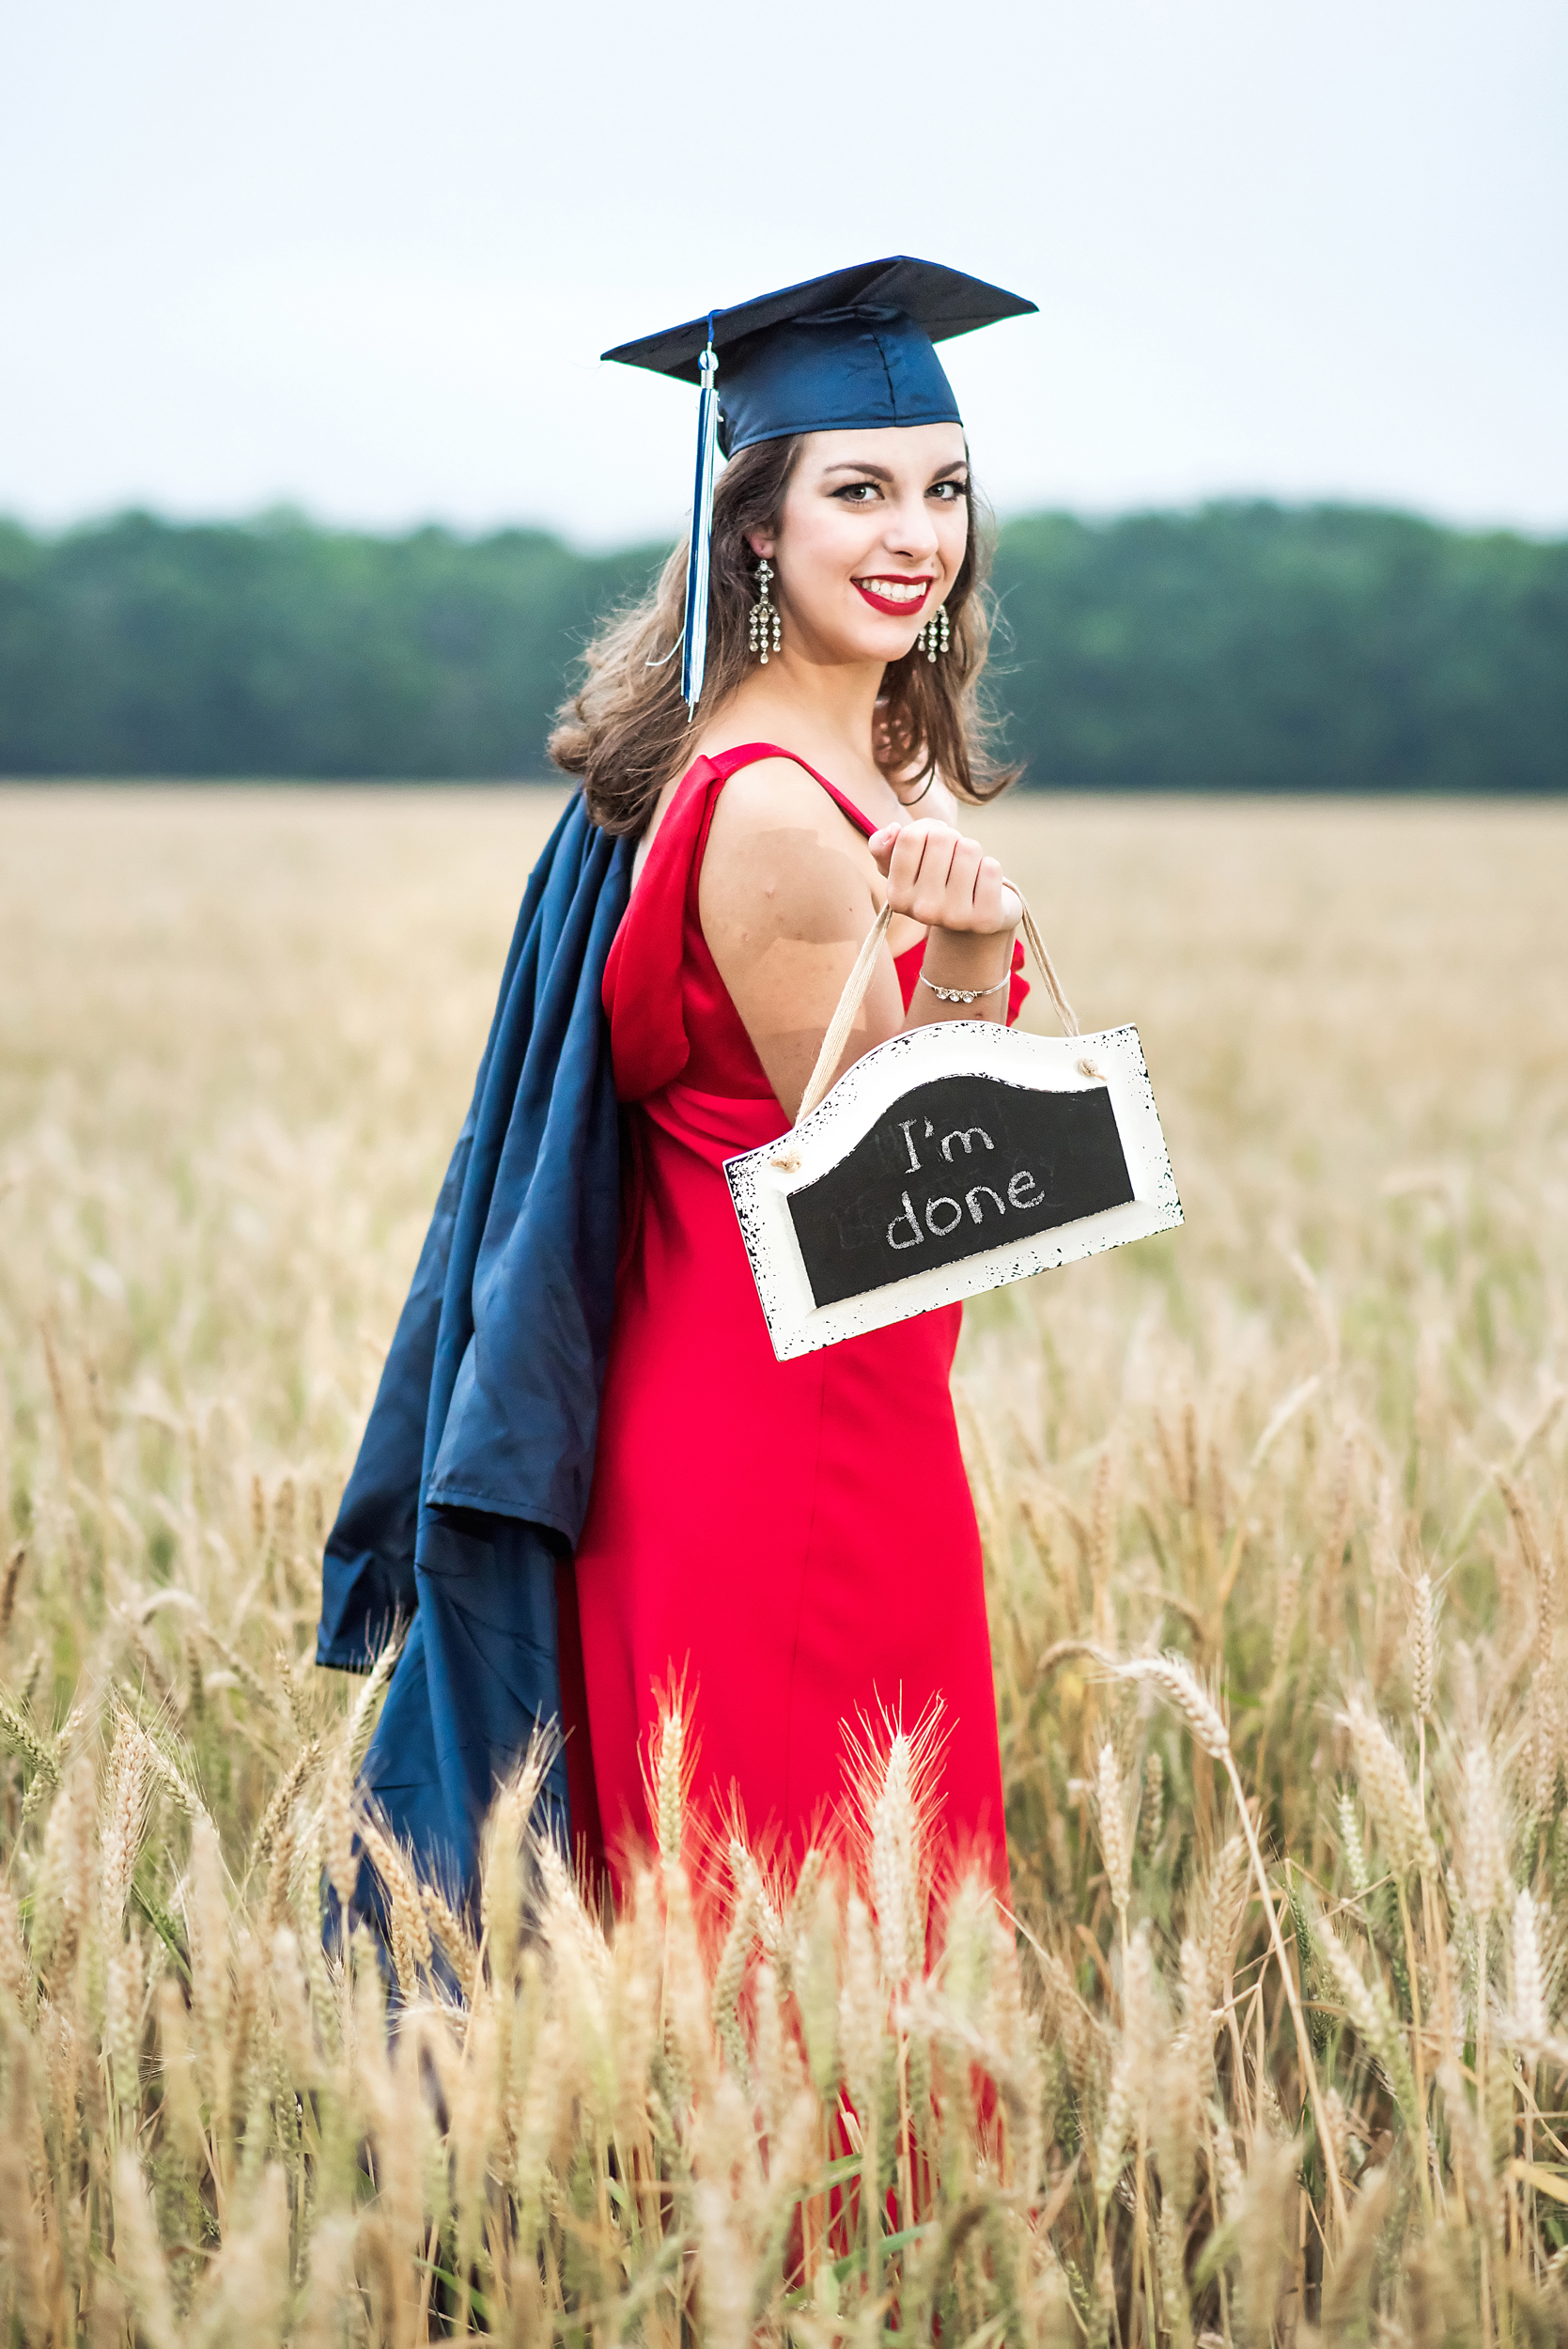 high school senior pictures chalkboard - boquet beach portraits - silverhill, alabama - wheat field